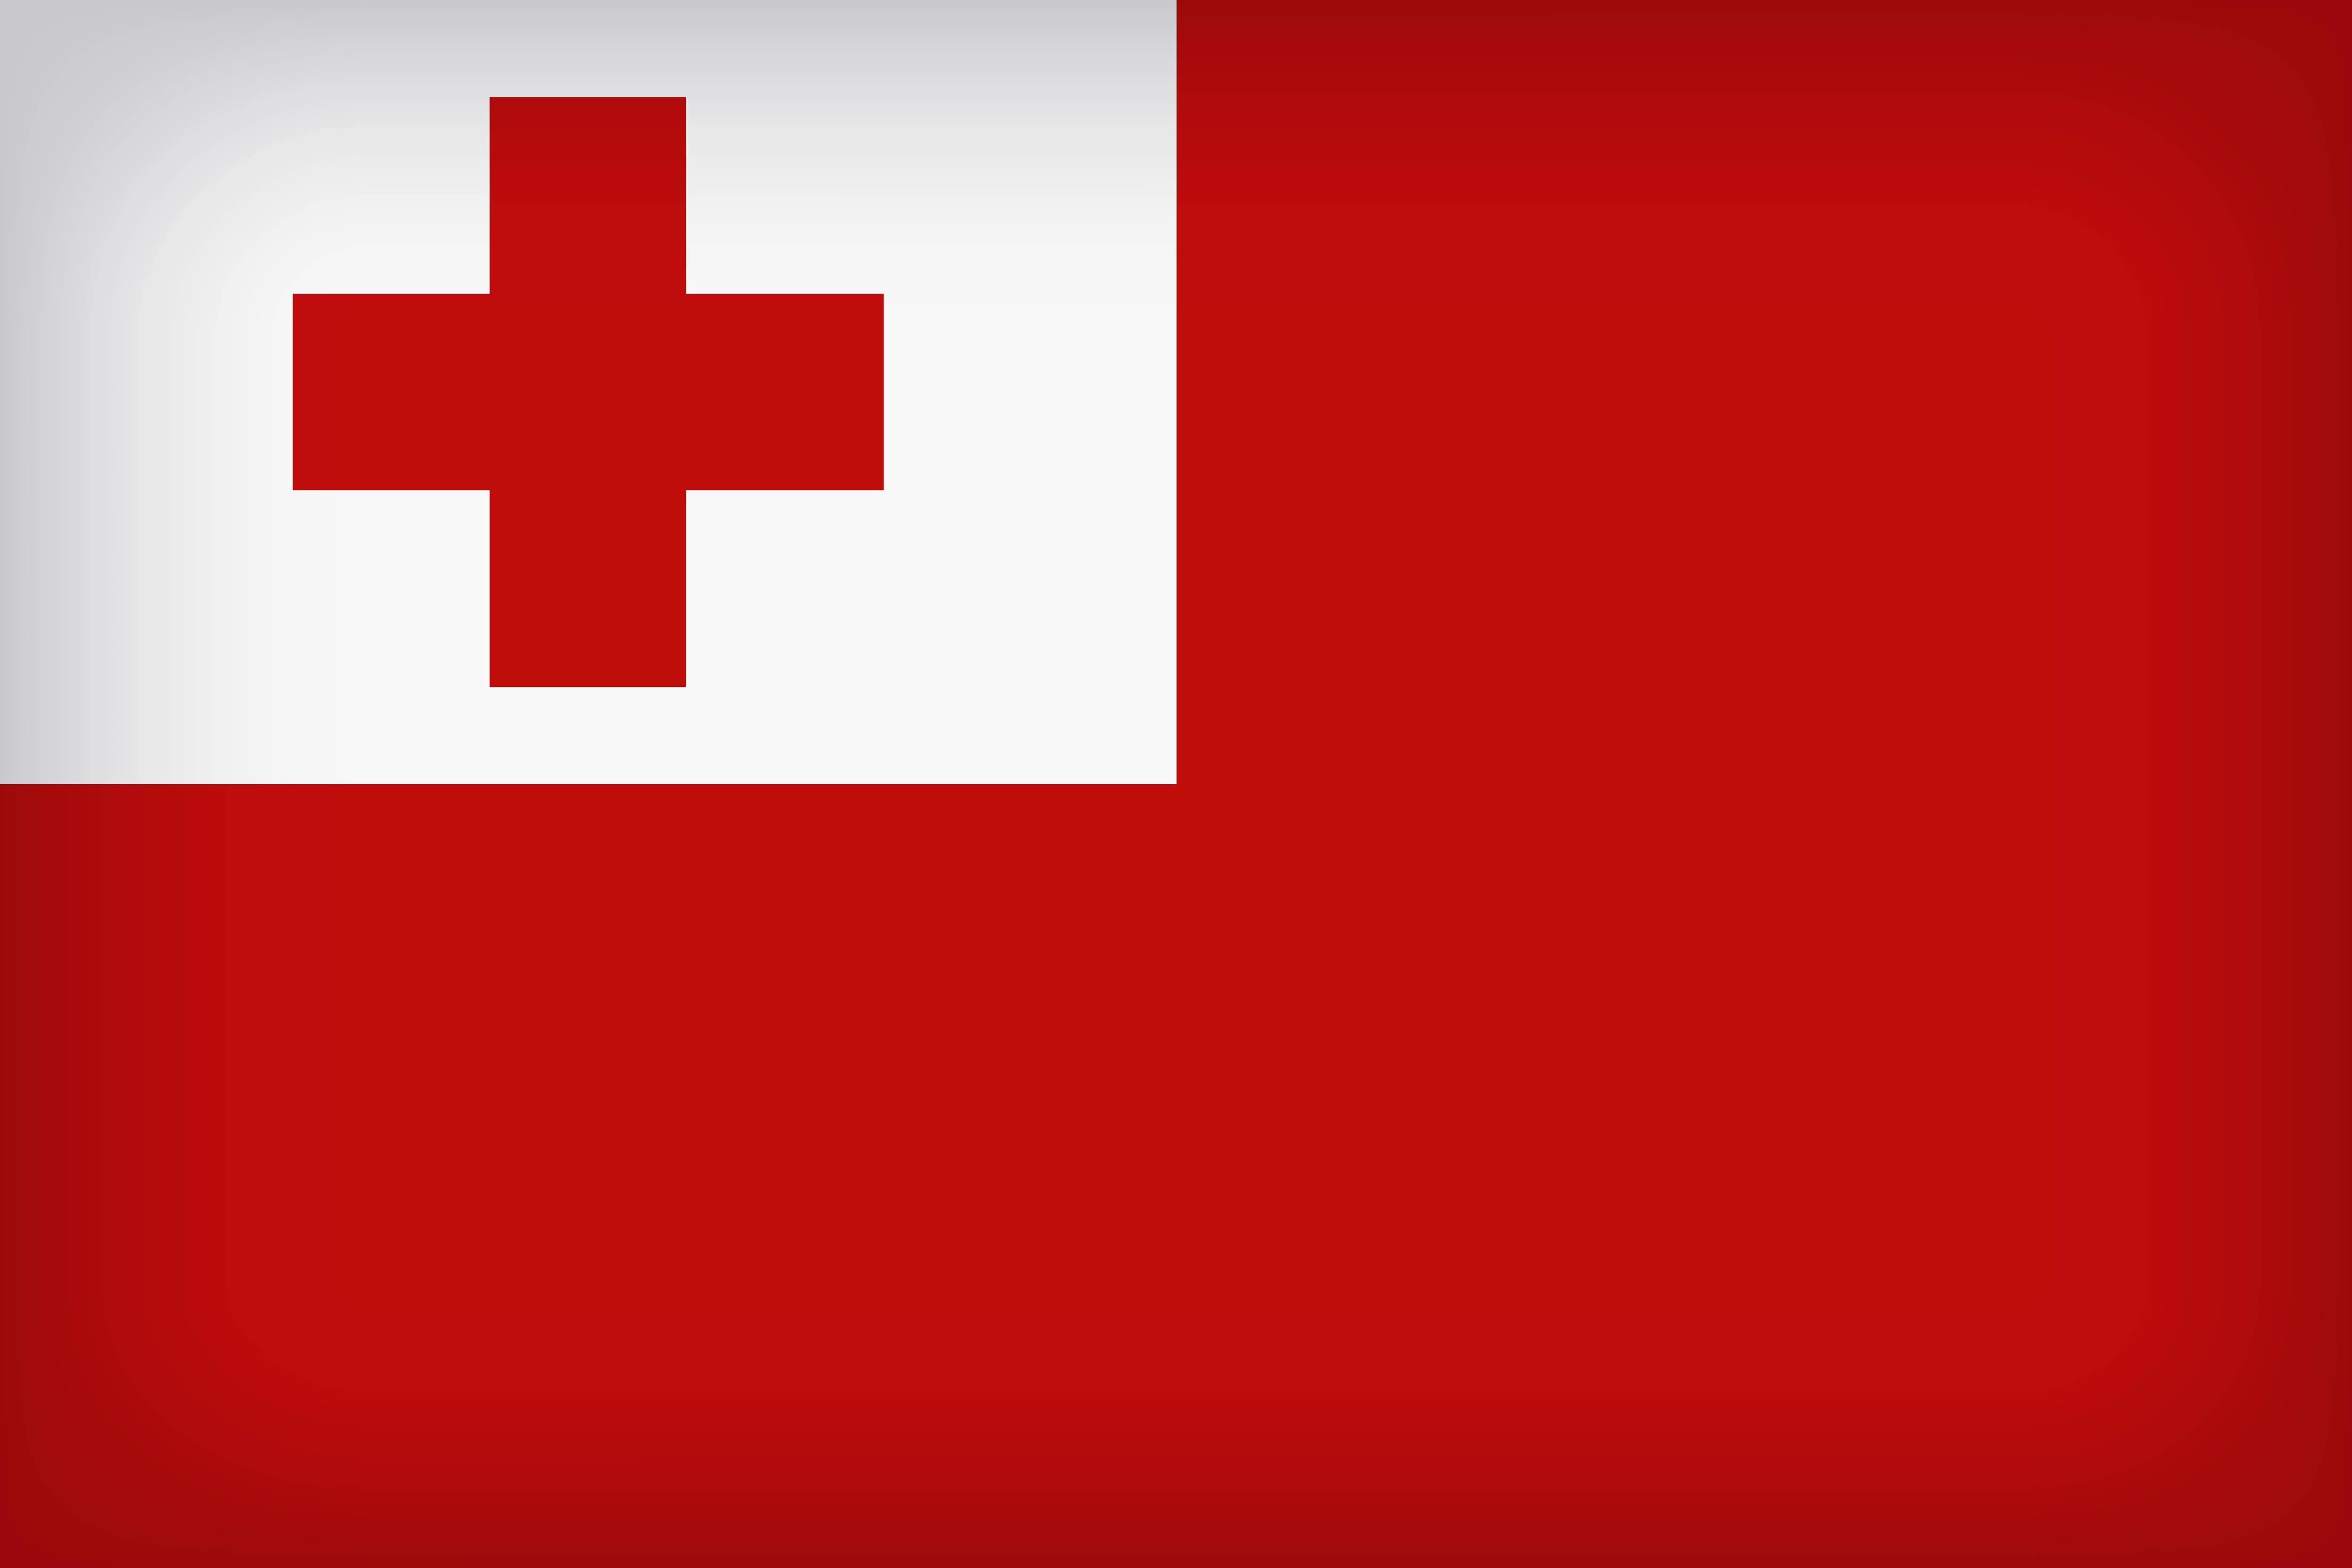 Tonga Large Flag Gallery Yopriceville   High Quality Images and 5000x3333